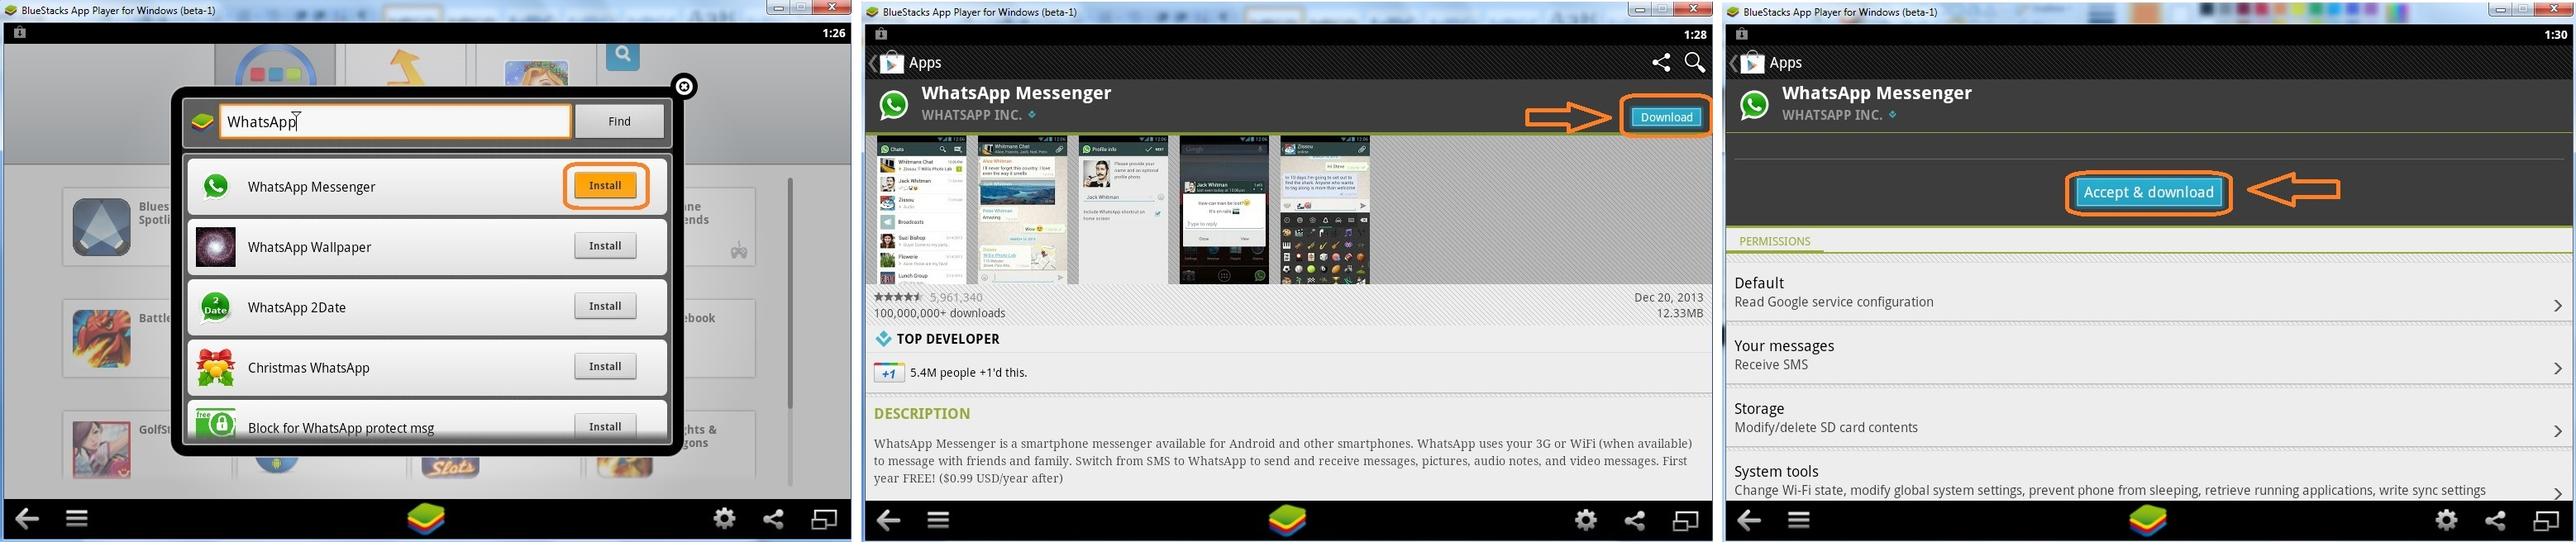 WhatsApp Googleplay Accept & Download, Install